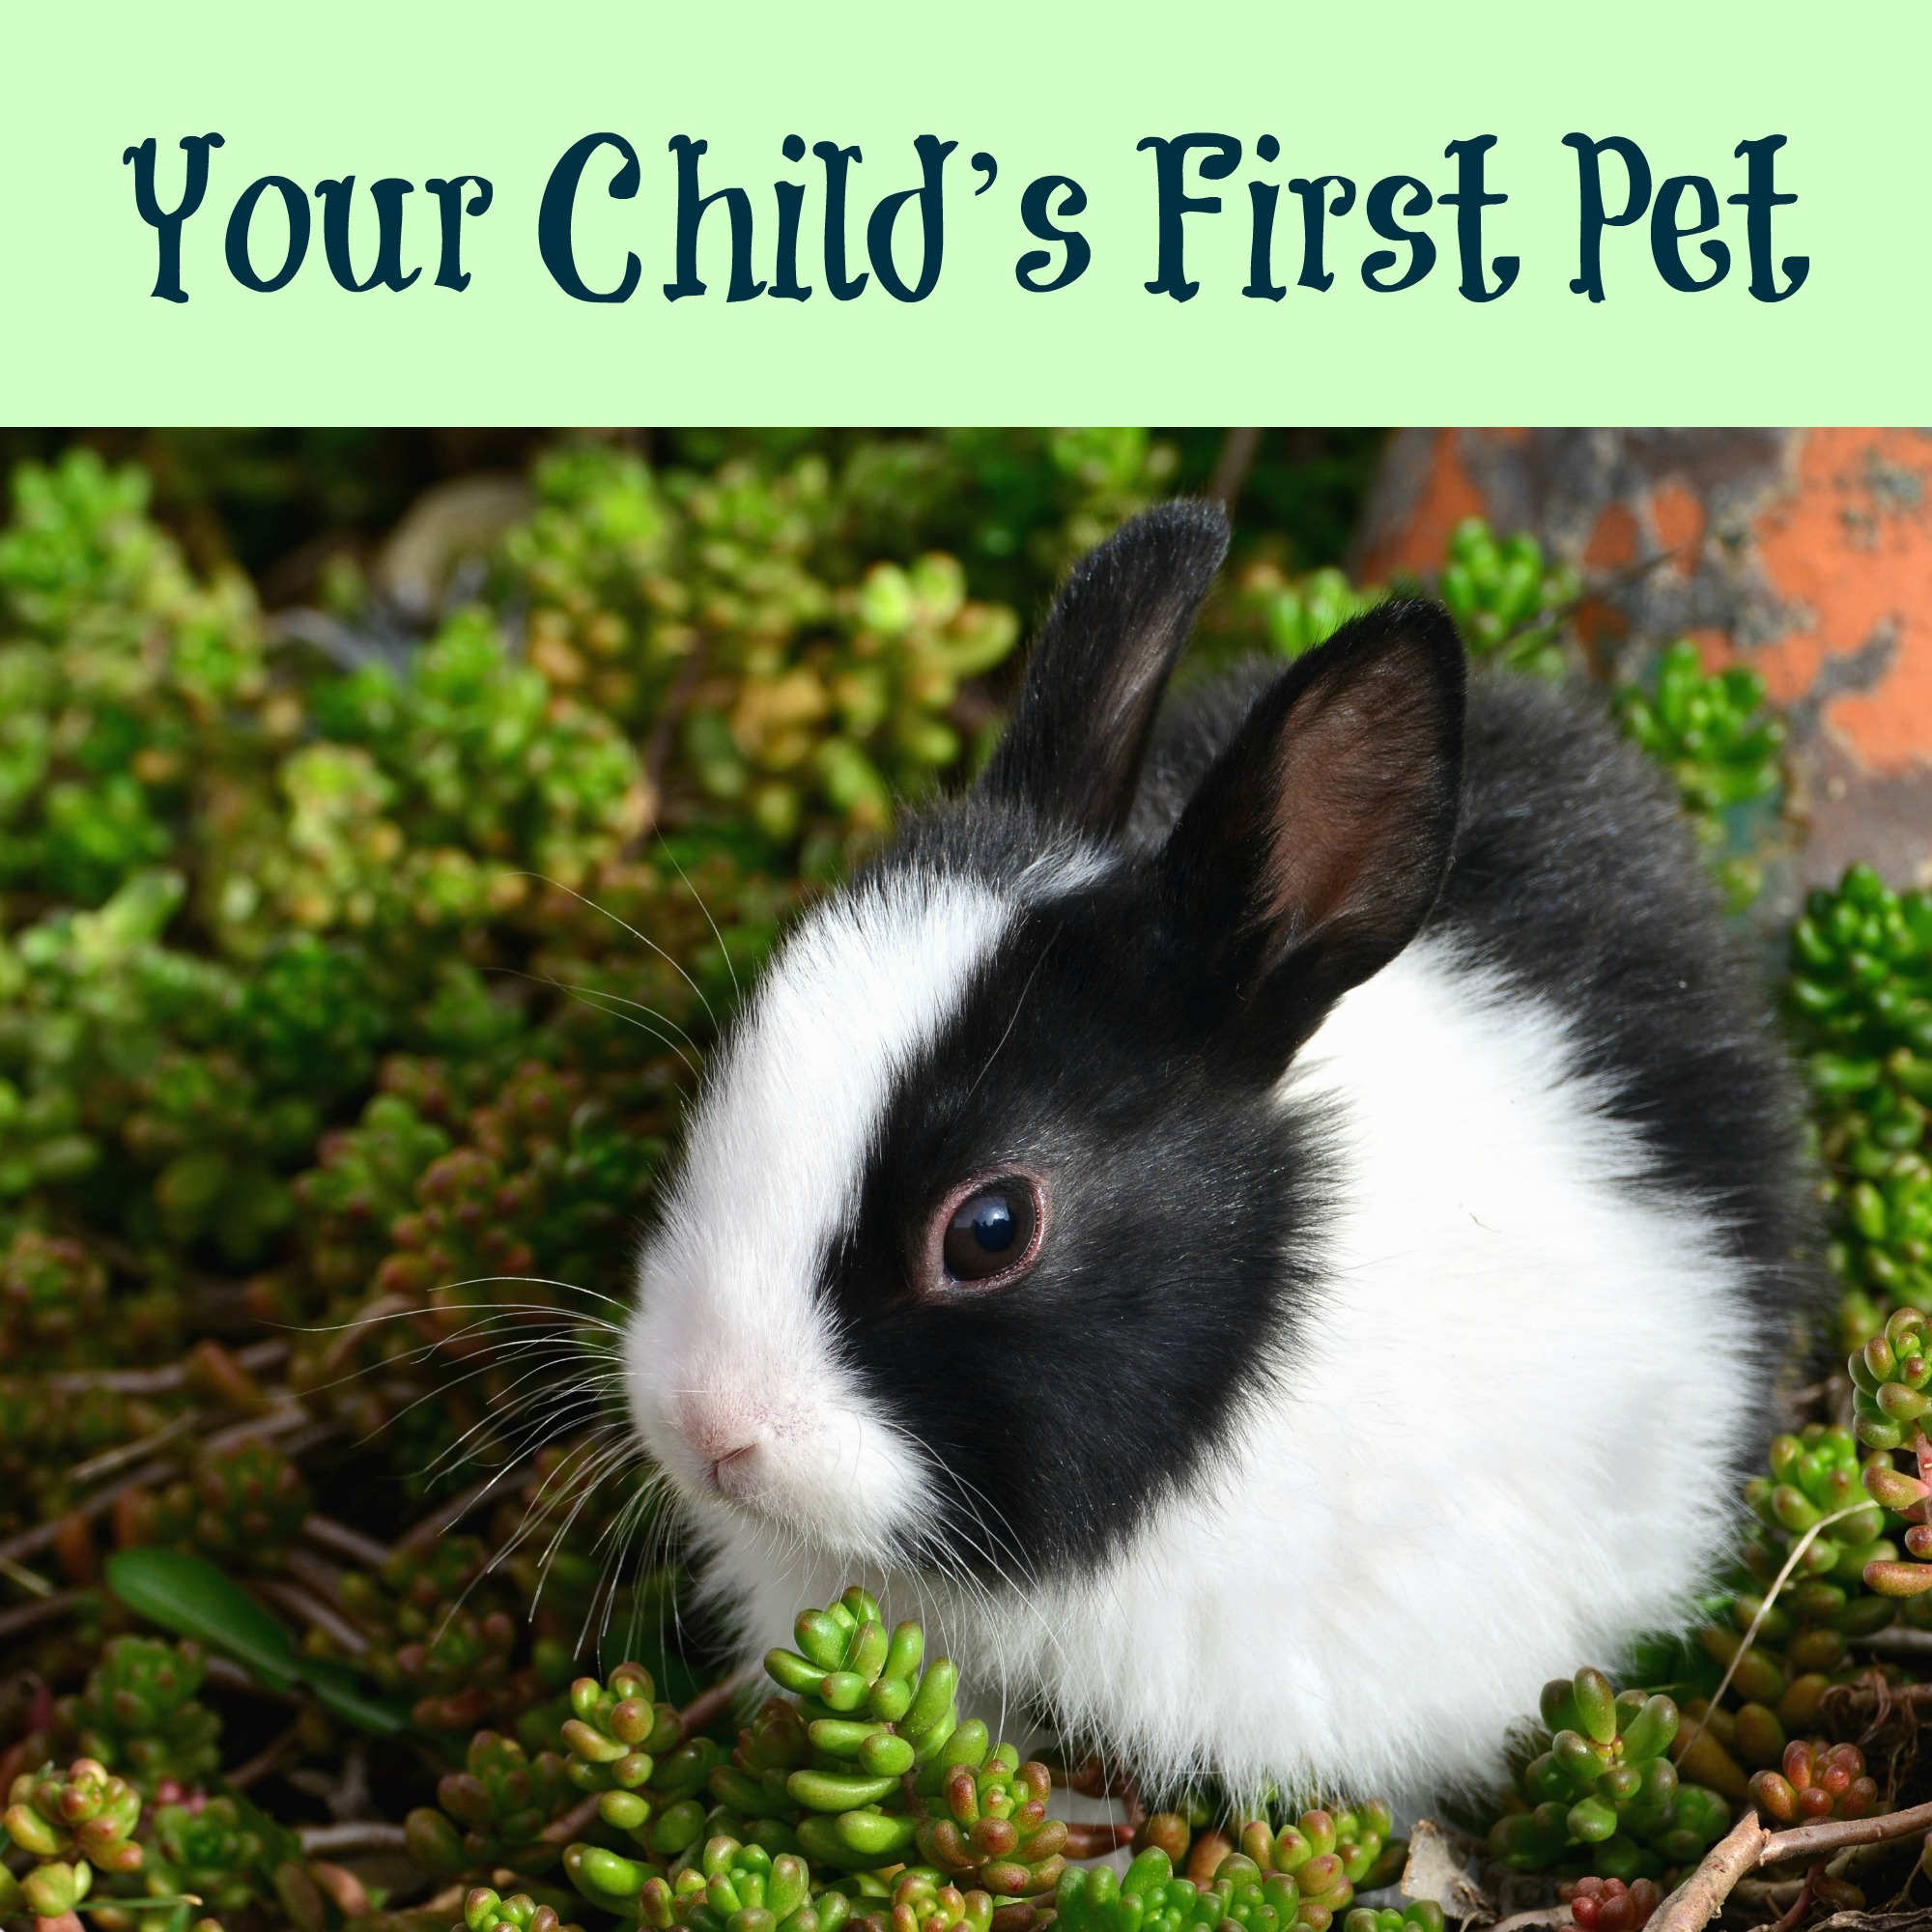 Your Child's First Pet